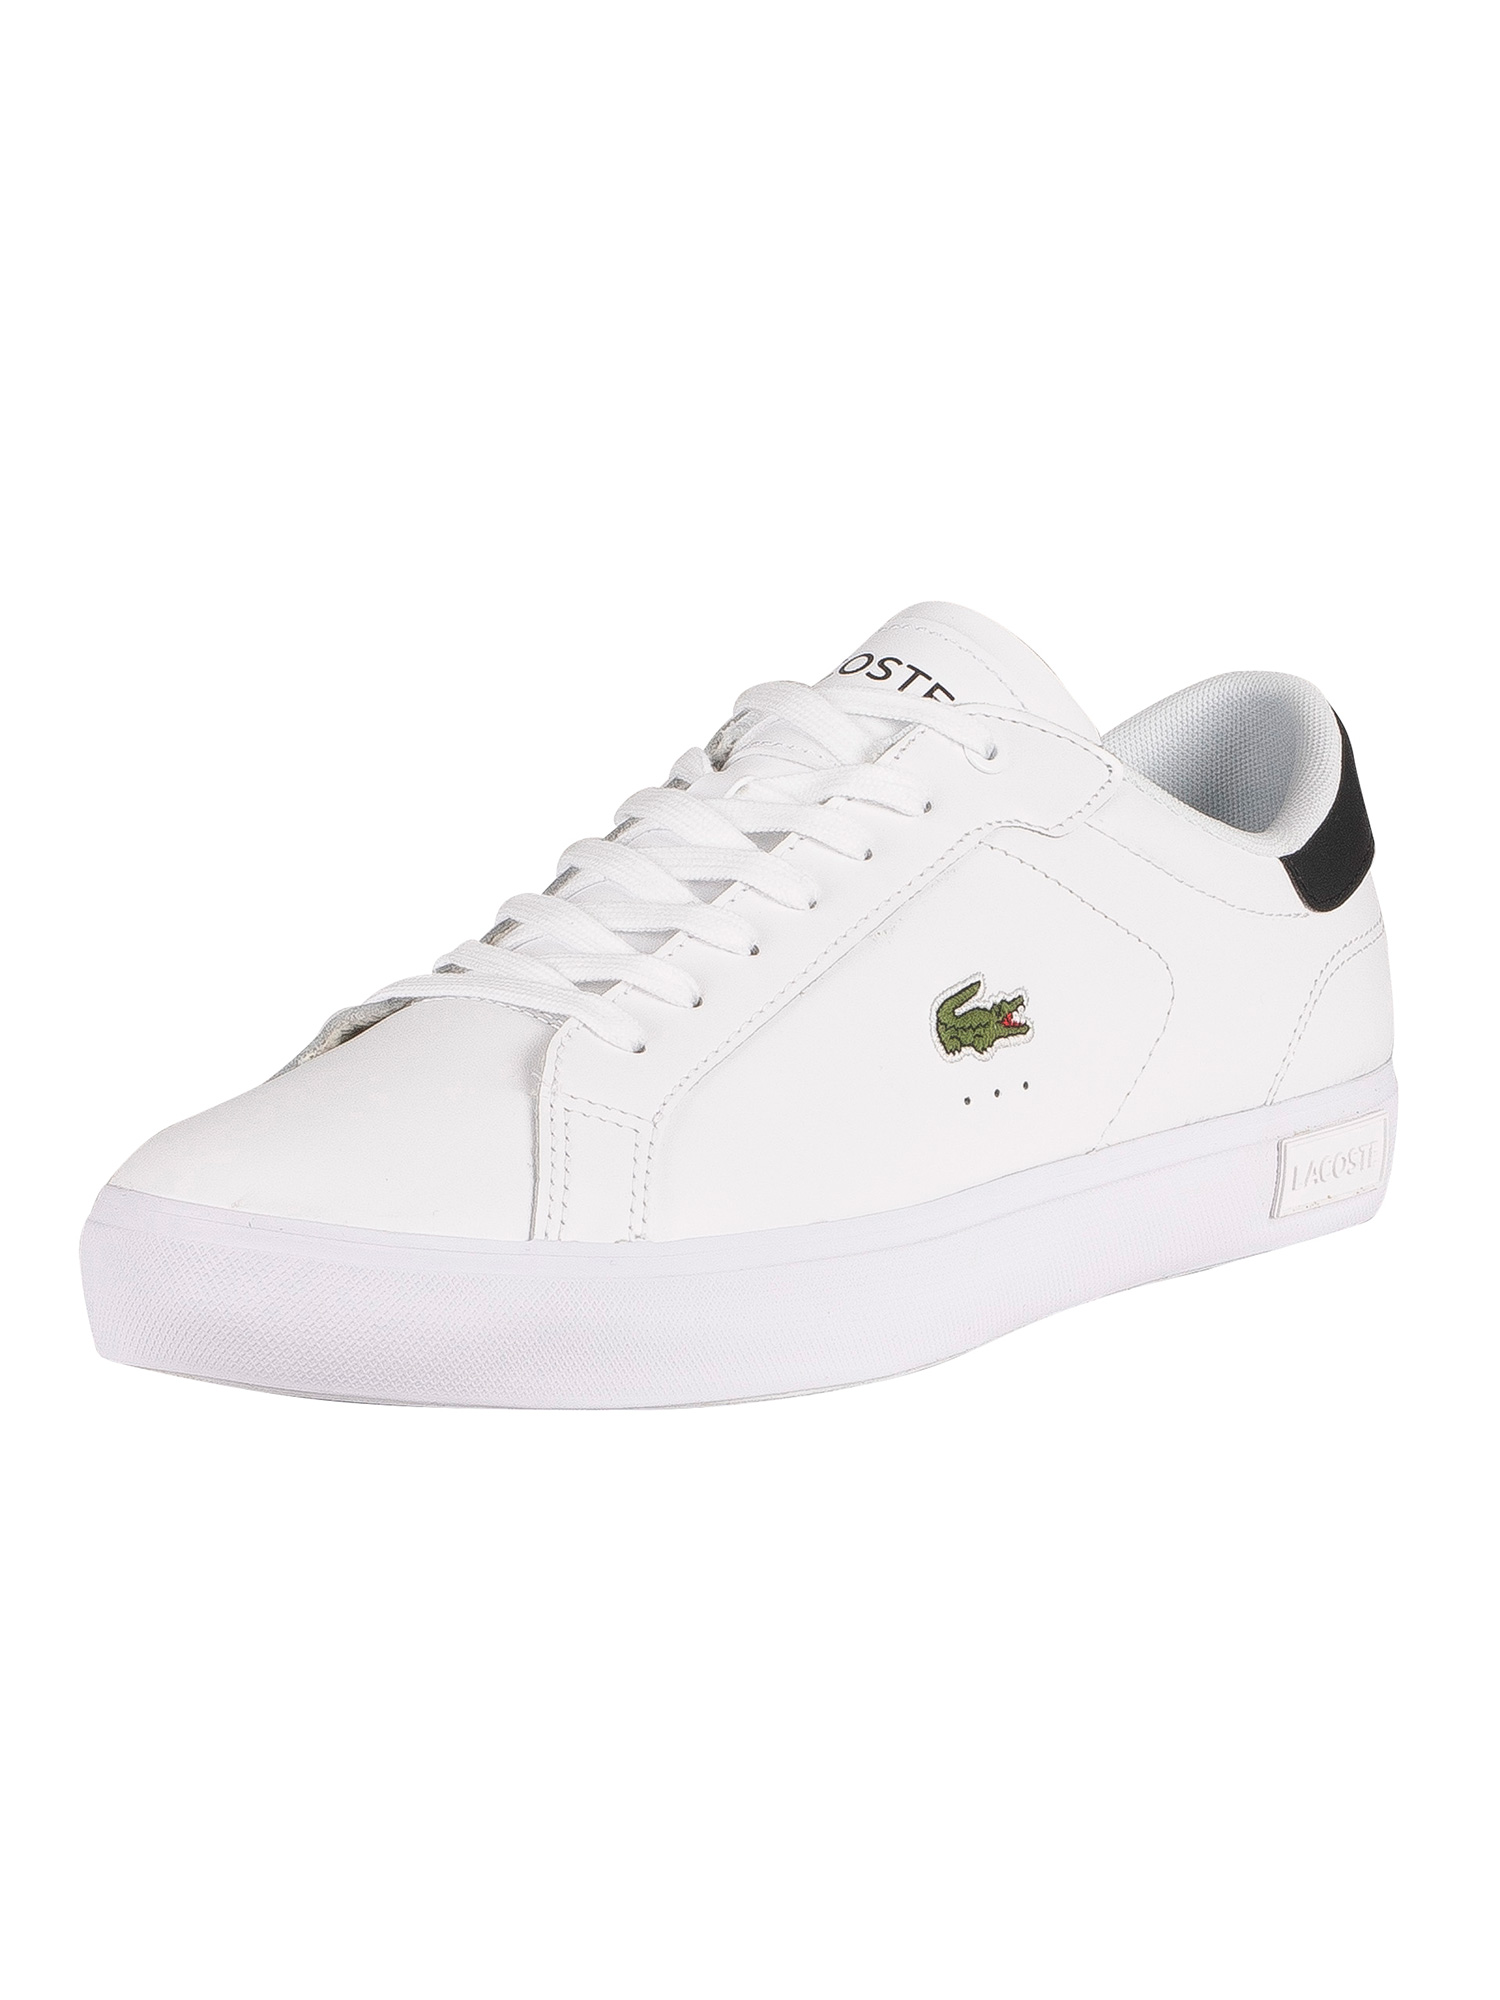 Powercourt 0121 1 SMA Leather Trainers